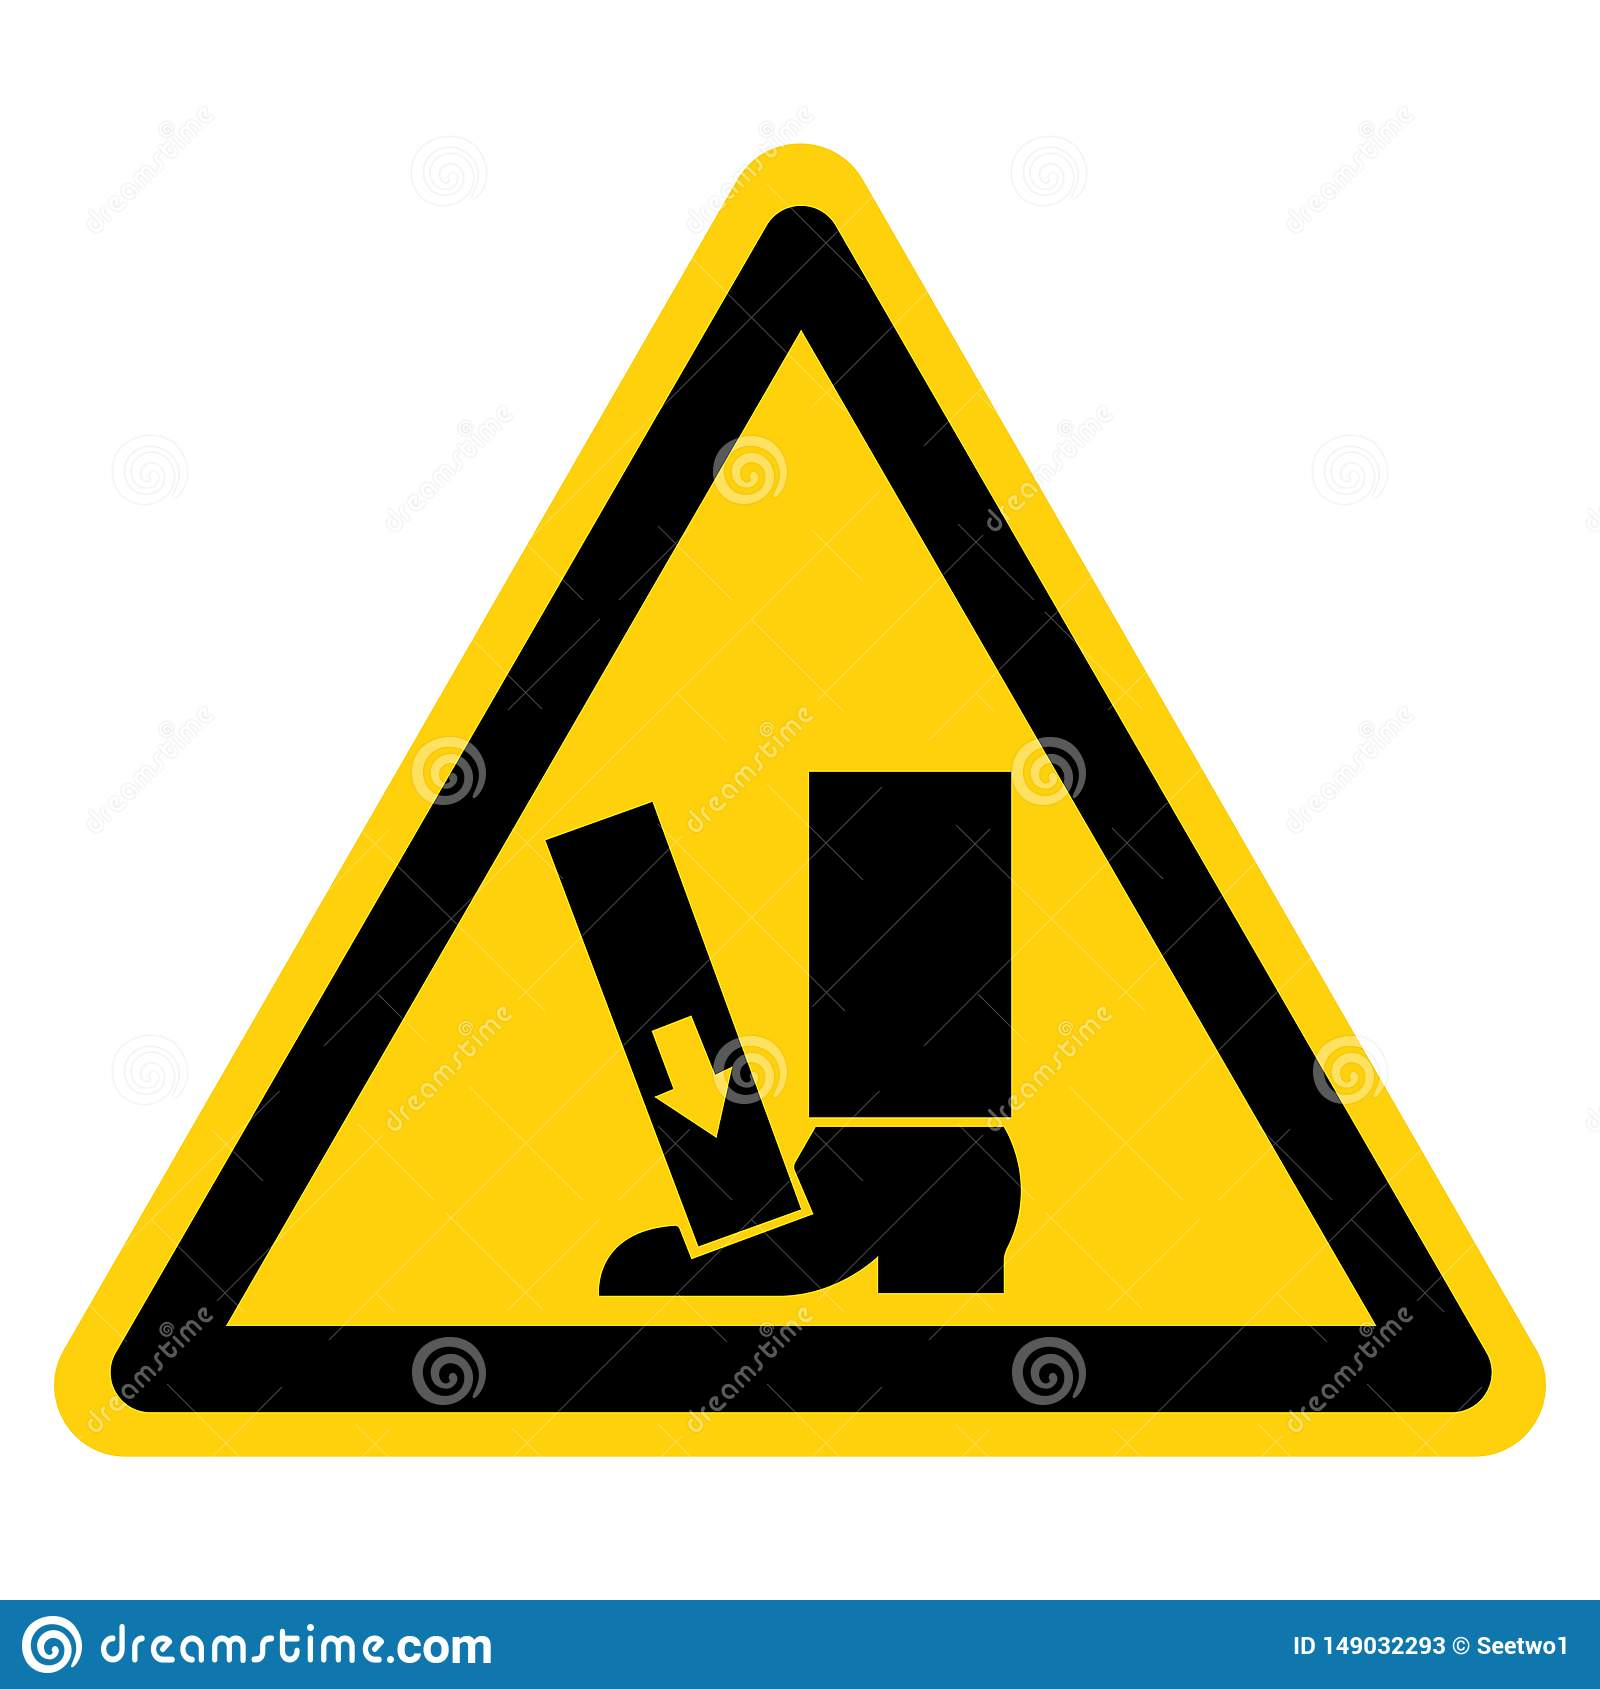 Foot Crush Force From Above Symbol Sign Isolate On White Background,Vector Illustration